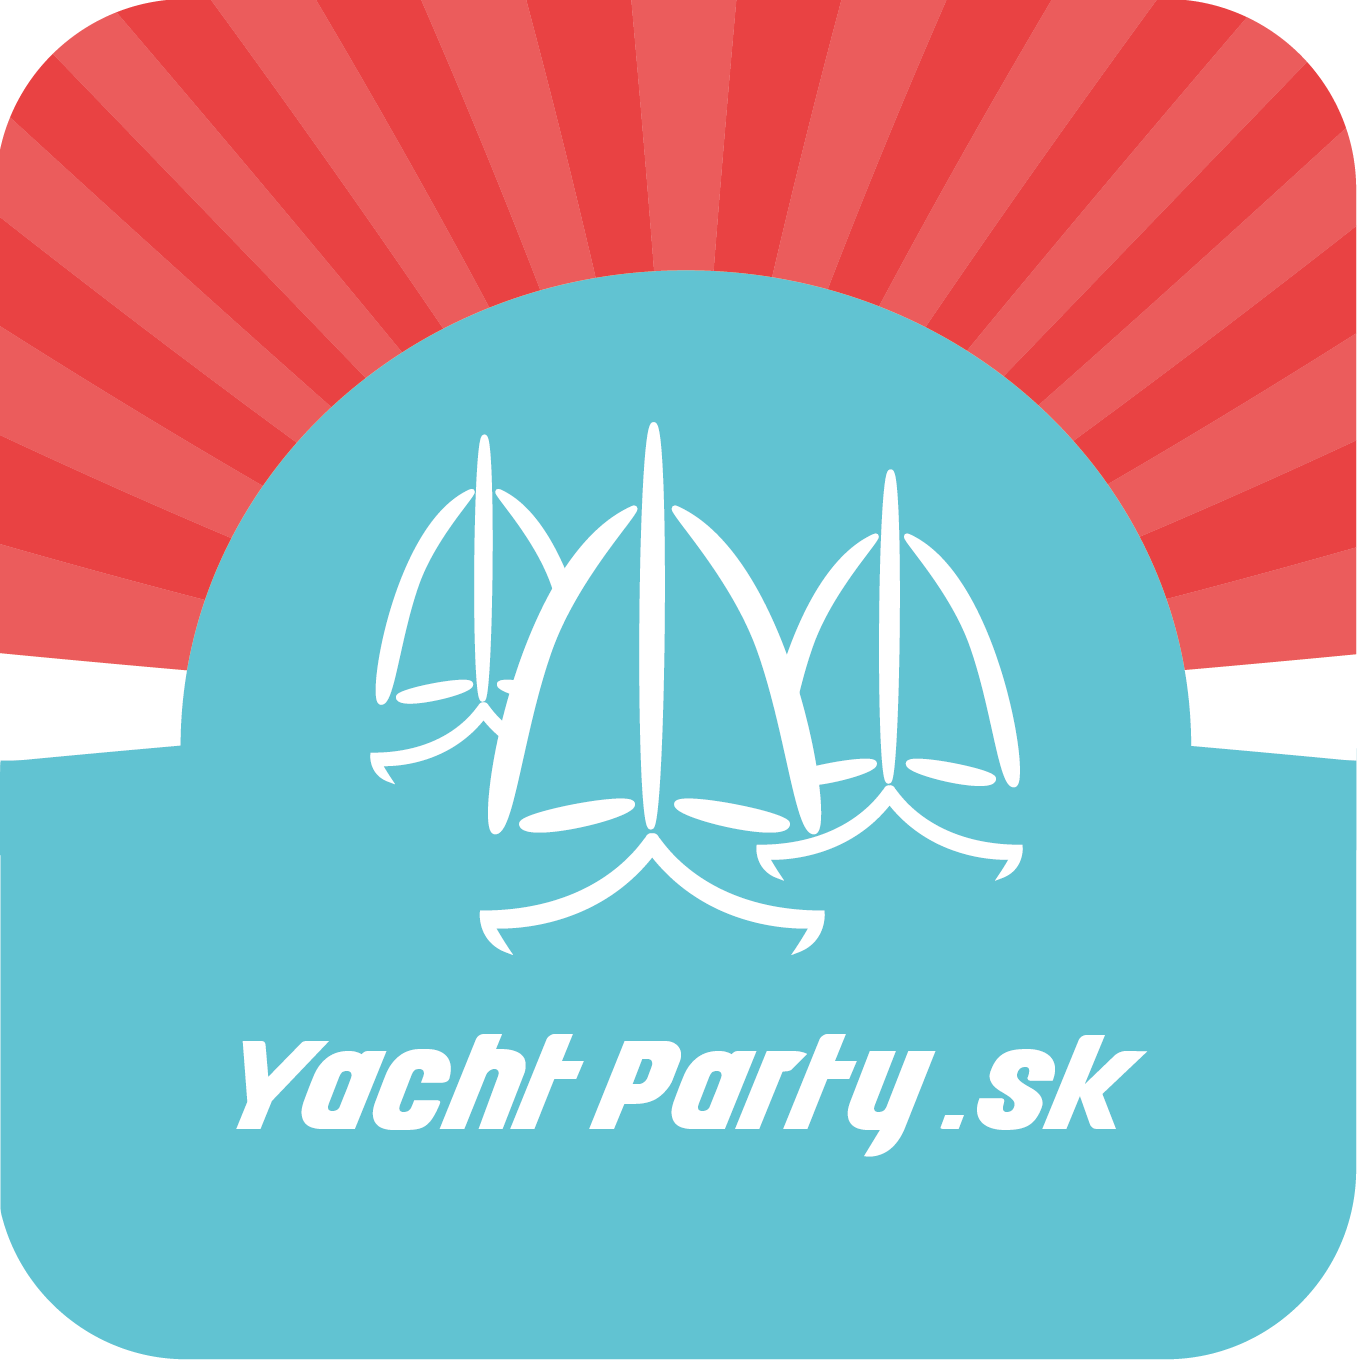 YachtParty.sk